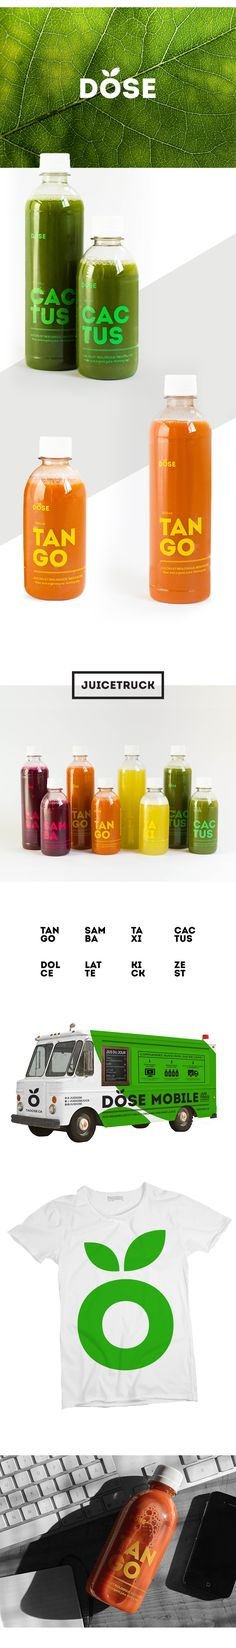 """The """"Dose"""" looks like it could be an iconic juice logo, with leaves to allude to the product's ingredients.  As for the flavors, the words are broken into two separate lines which is very unique but still understandable."""